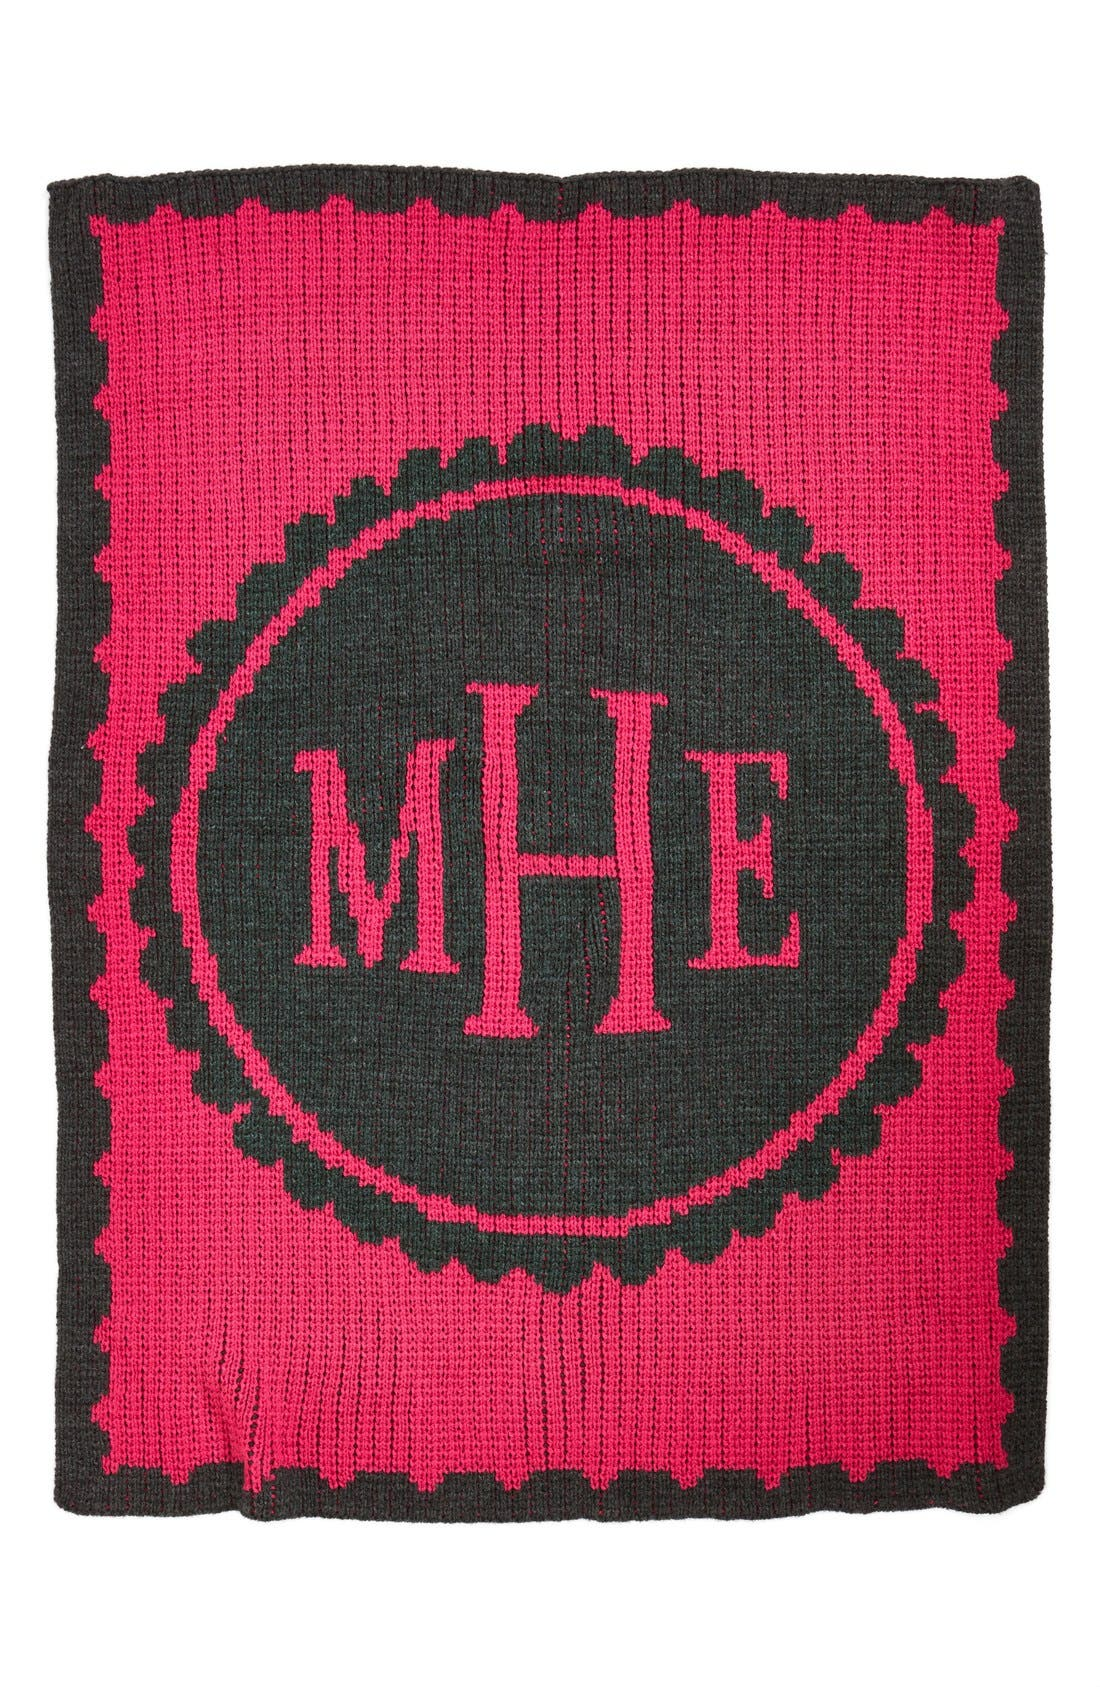 'Scalloped - Small' Personalized Blanket,                         Main,                         color, CHARCOAL GREY/ FUSCHIA